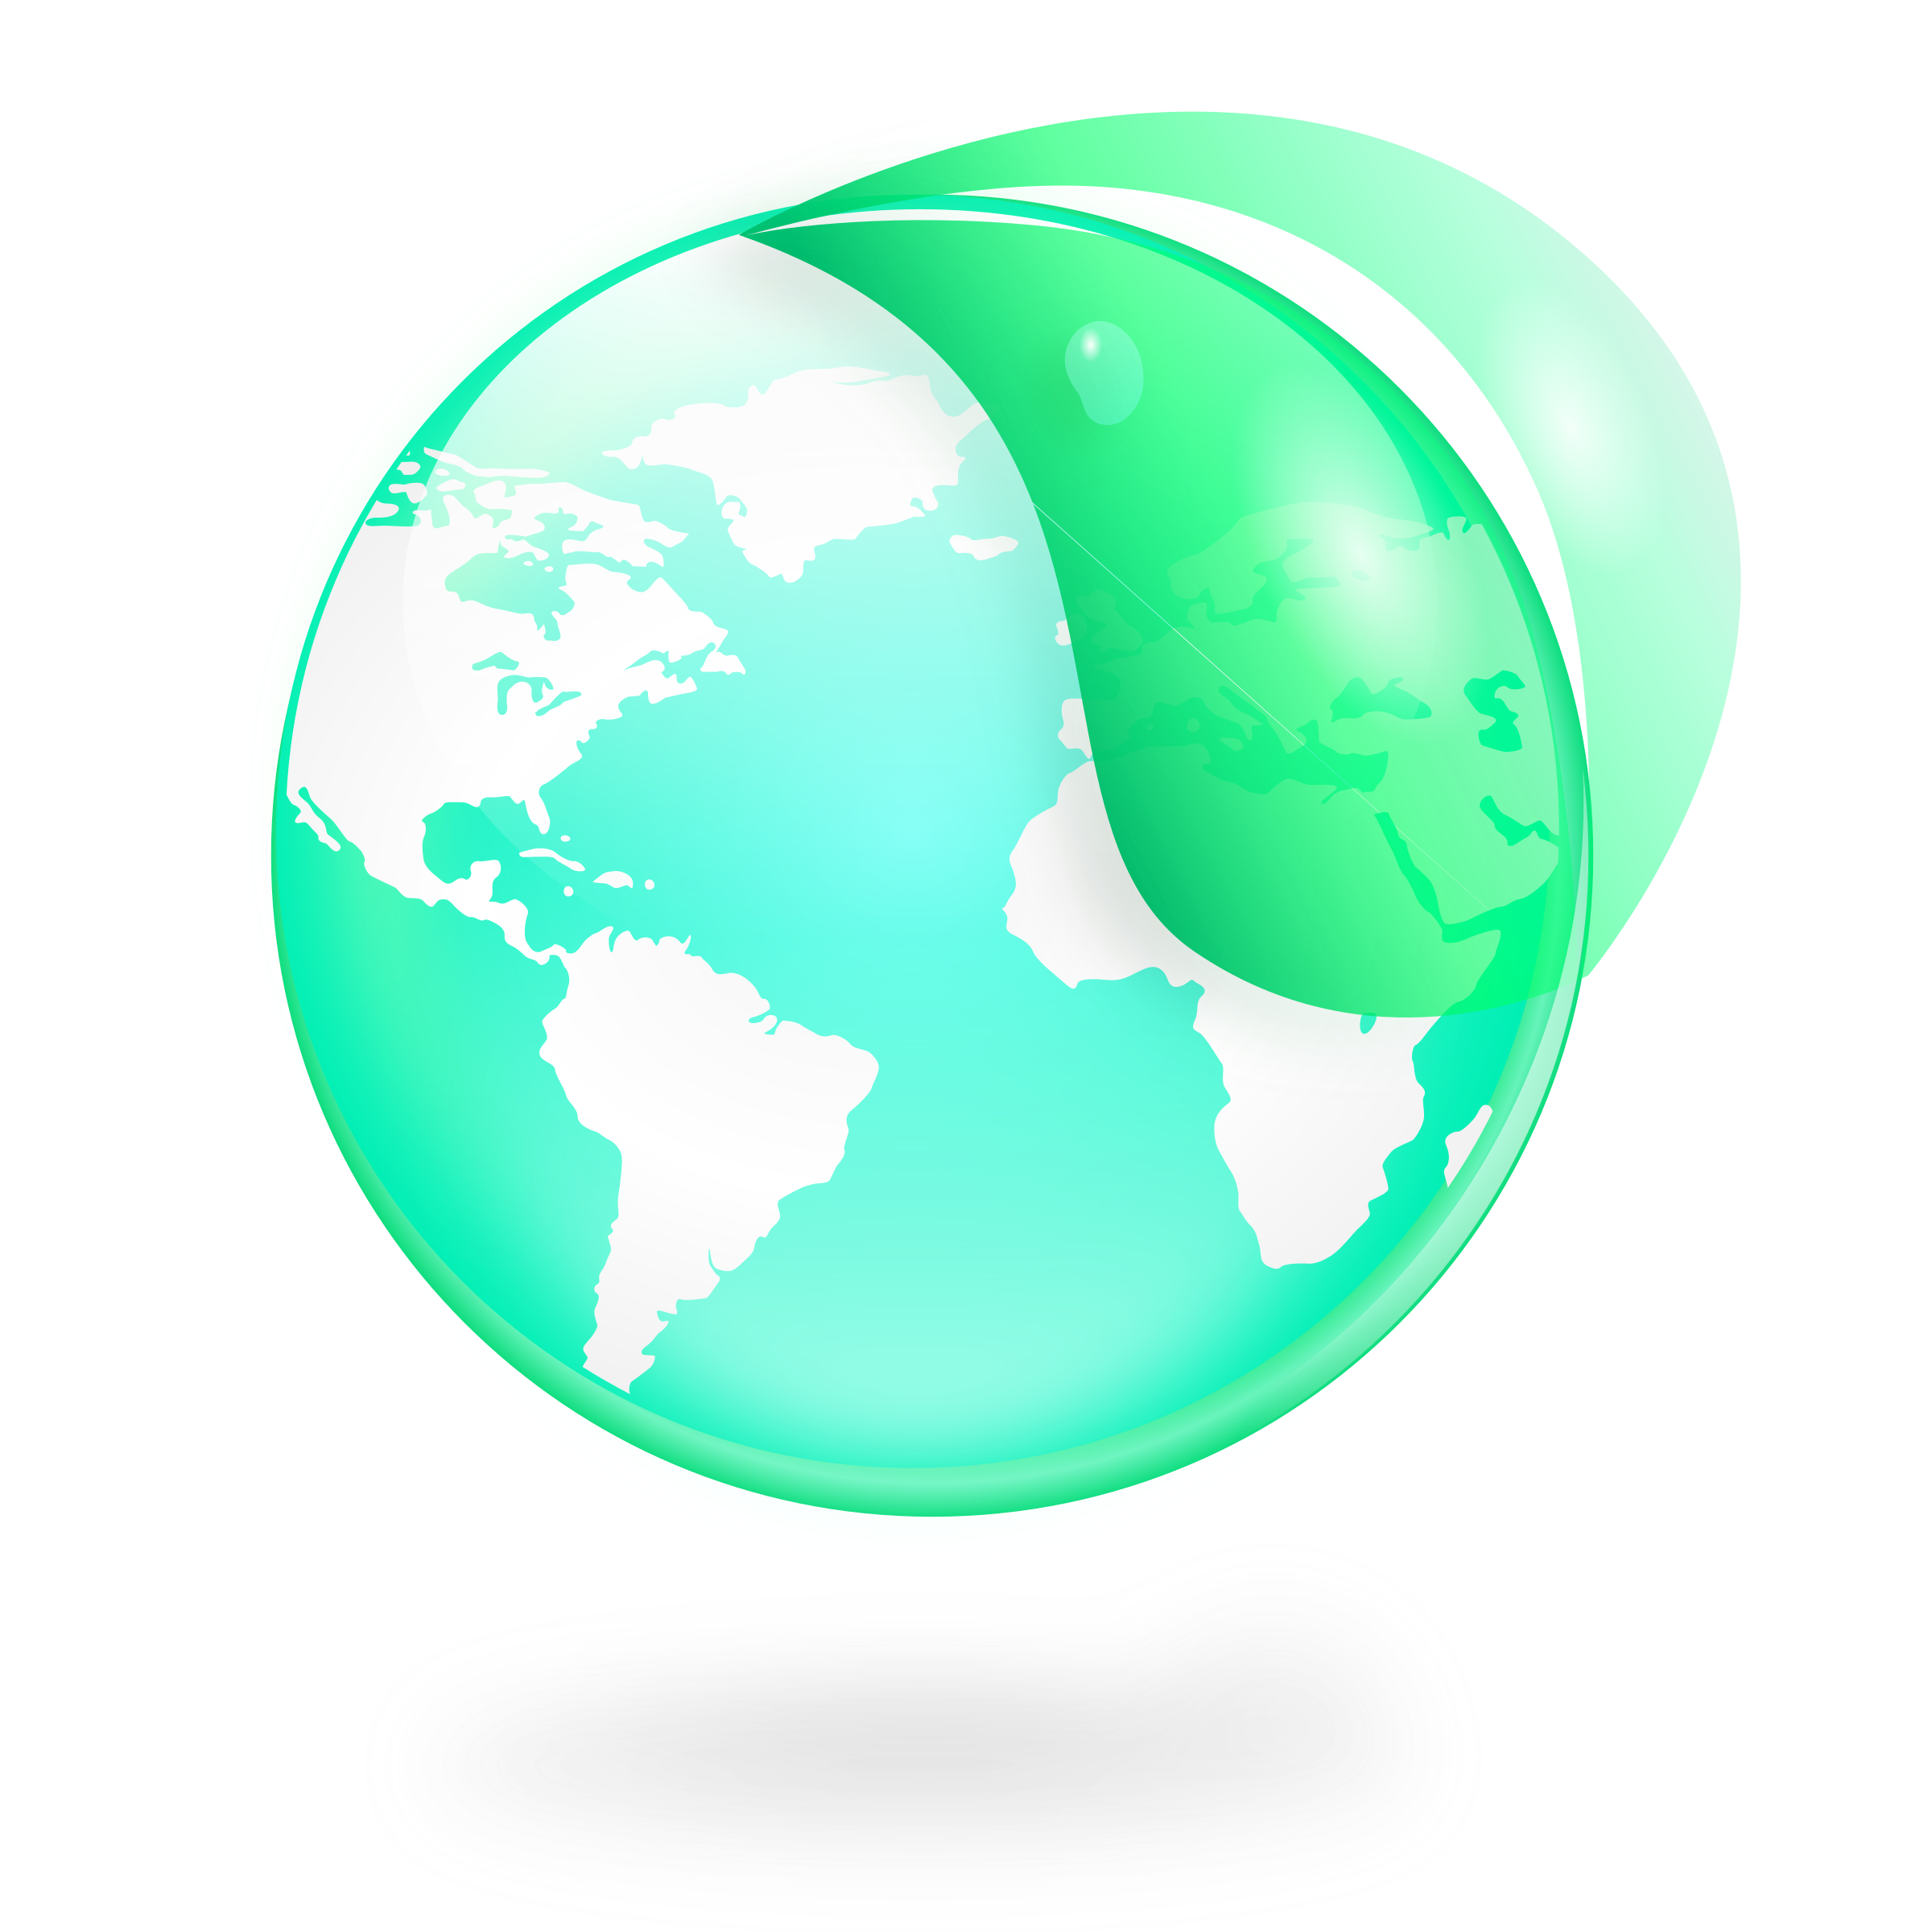 Environmental / Eco Globe & Leaf Icon by kendraschaefer